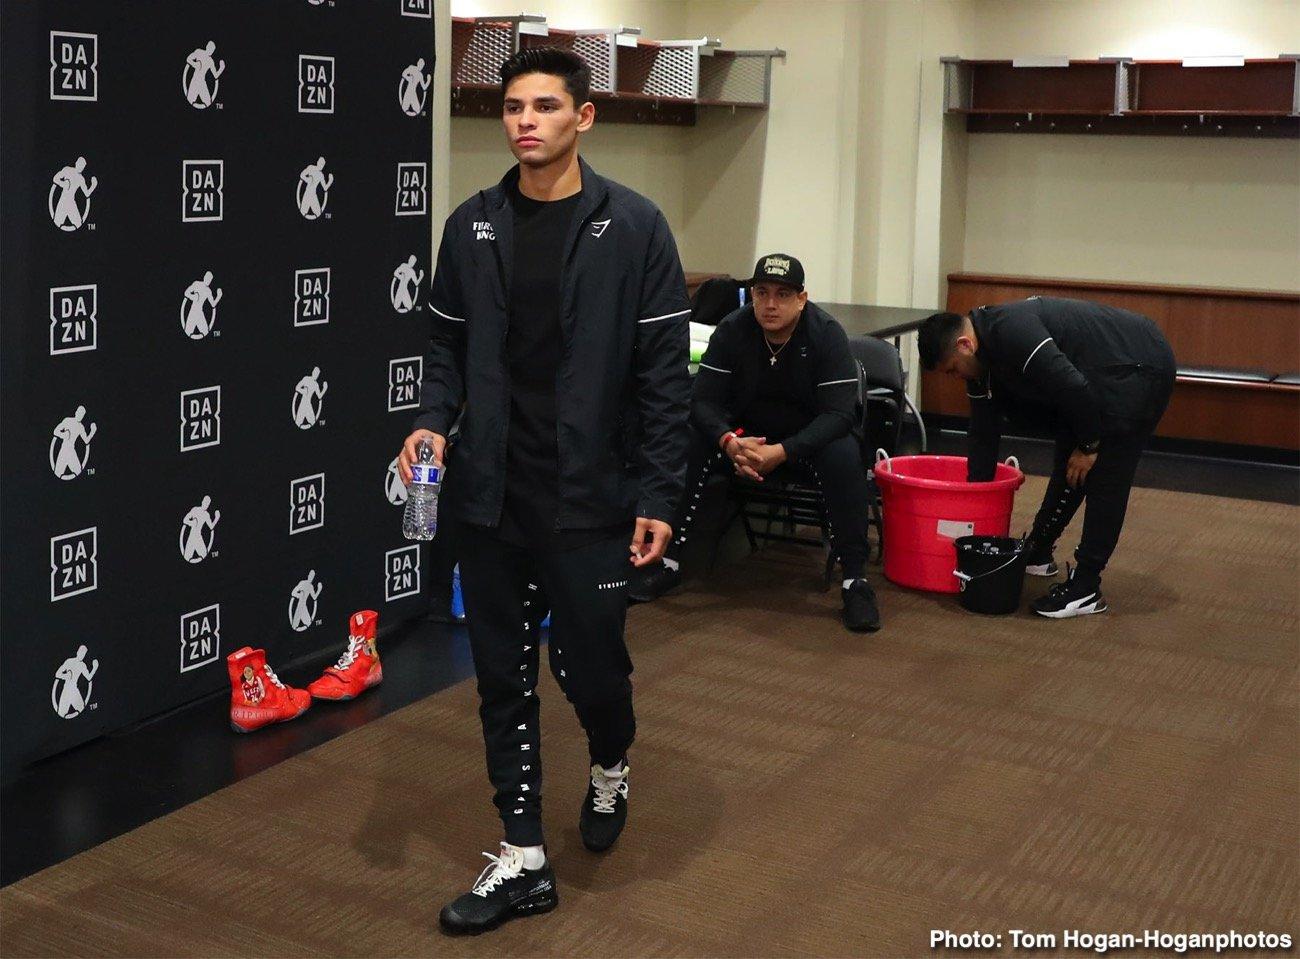 Ryan Garcia - Gervonta Davis took a shot at Ryan Garcia on social media on Tuesday in trashing him after learning that negotiations for his July 4 fight on DAZN fell apart after the streaming giant offered Ryan $200,000. Sports Illustrated is reporting that Ryan, 21, was offered only $200K for the July fight.